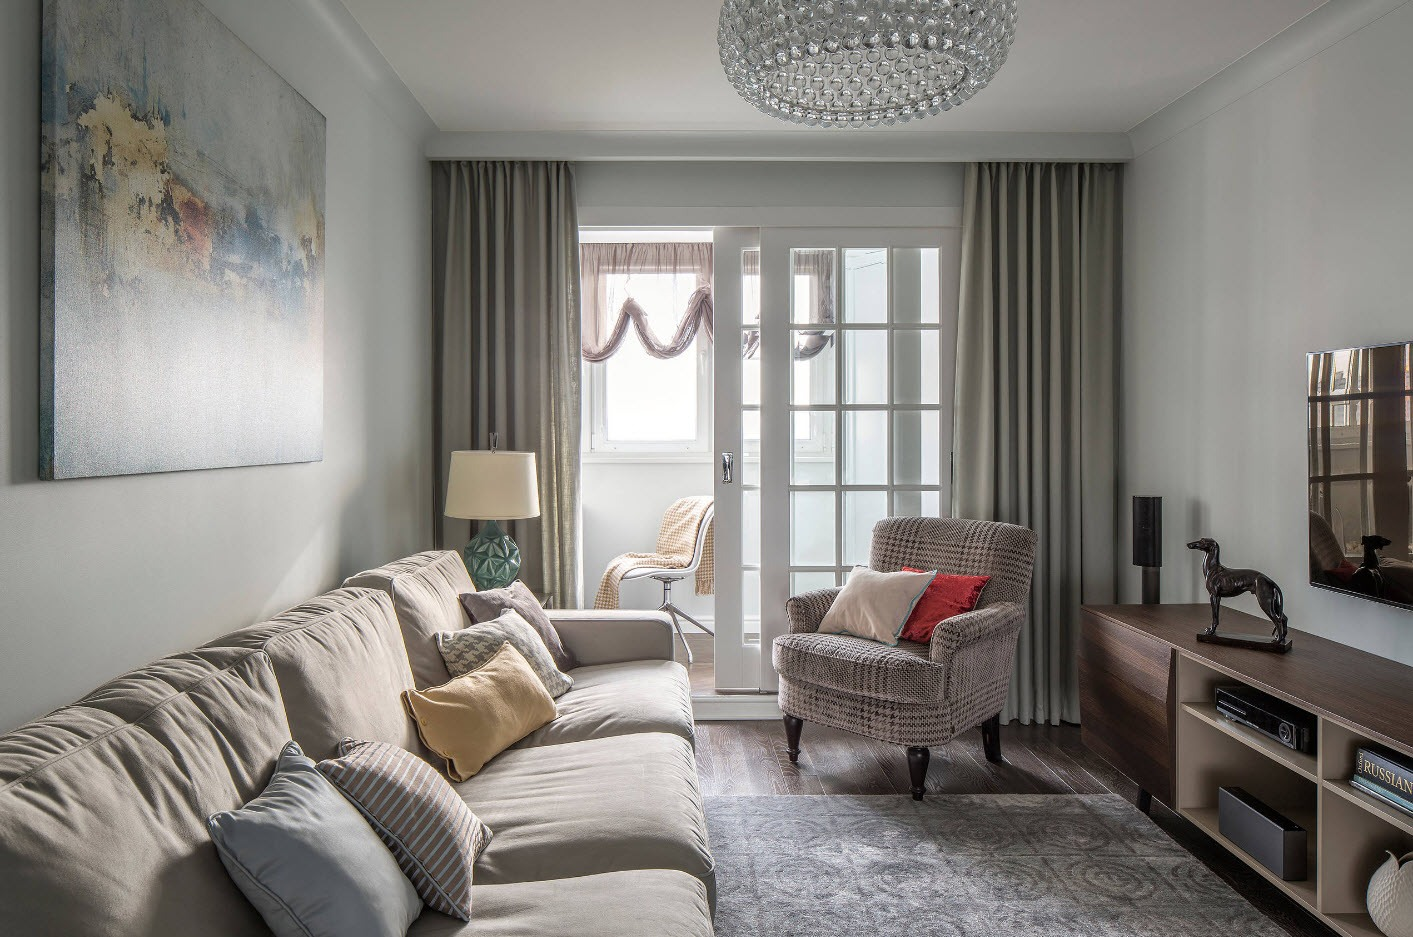 Casual styled living room with the balcony behind gray curtains